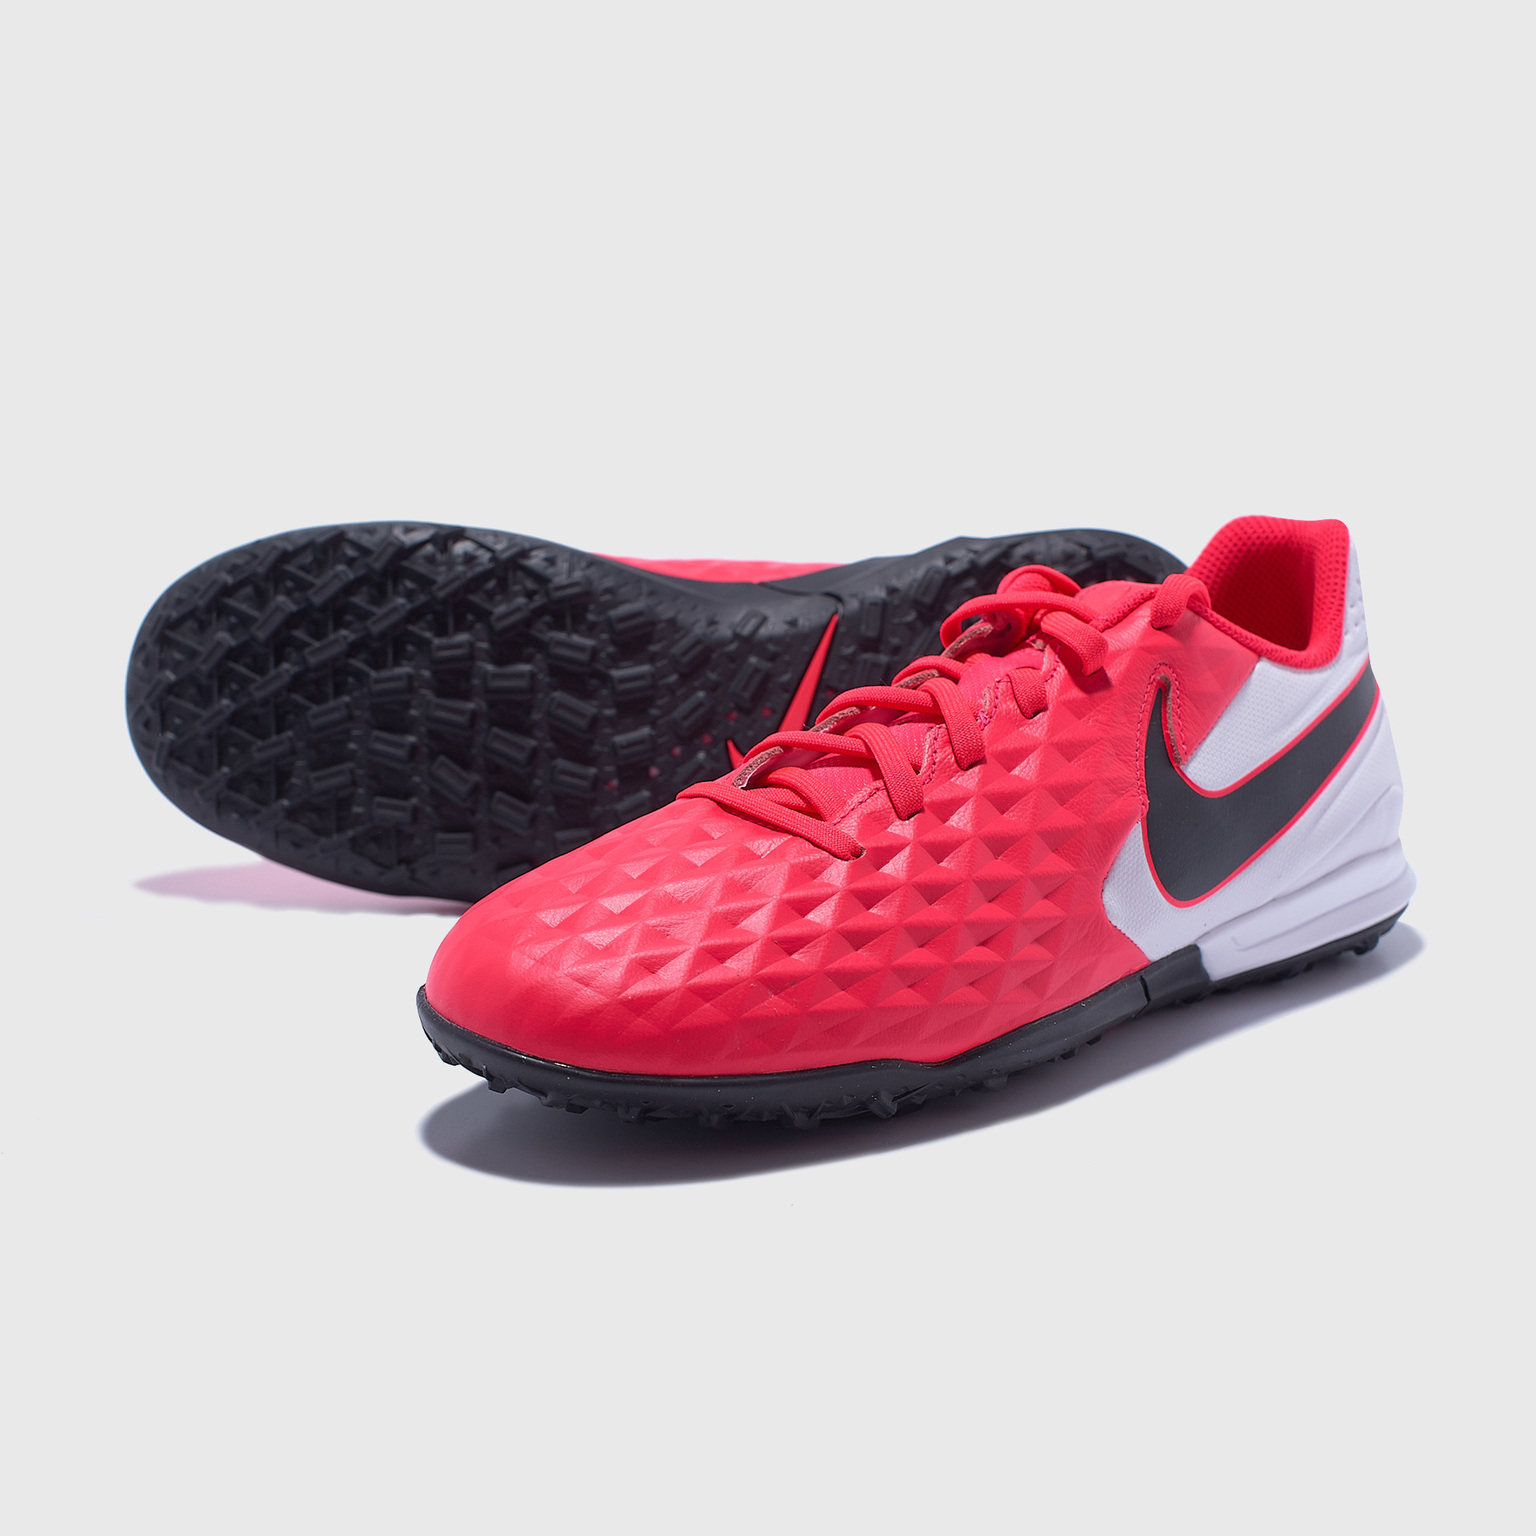 Шиповки Nike Legend 8 Academy TF AT6100-606 шиповки детские nike legend 8 academy tf at5736 606